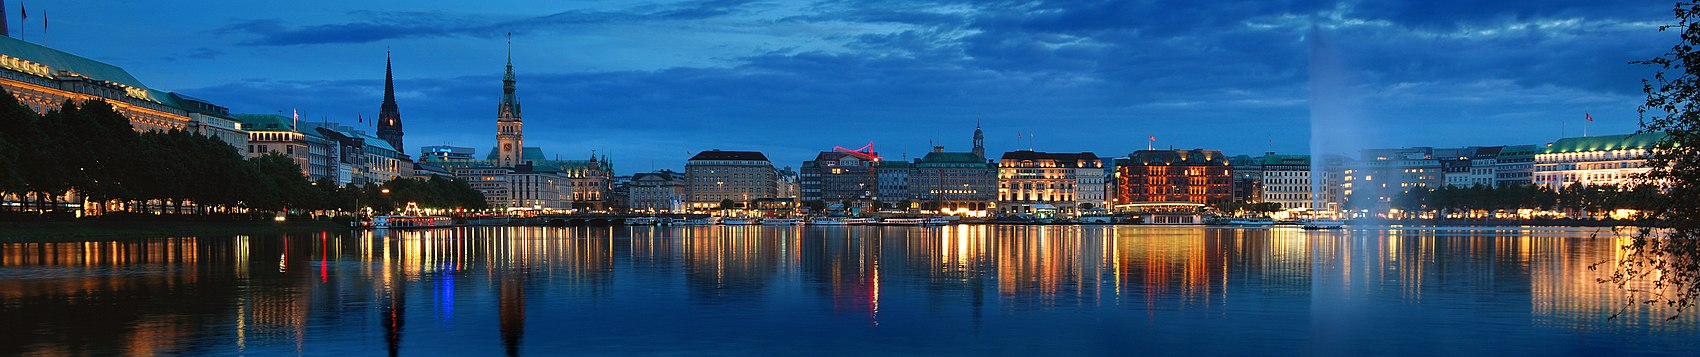 The Binnenalster at night